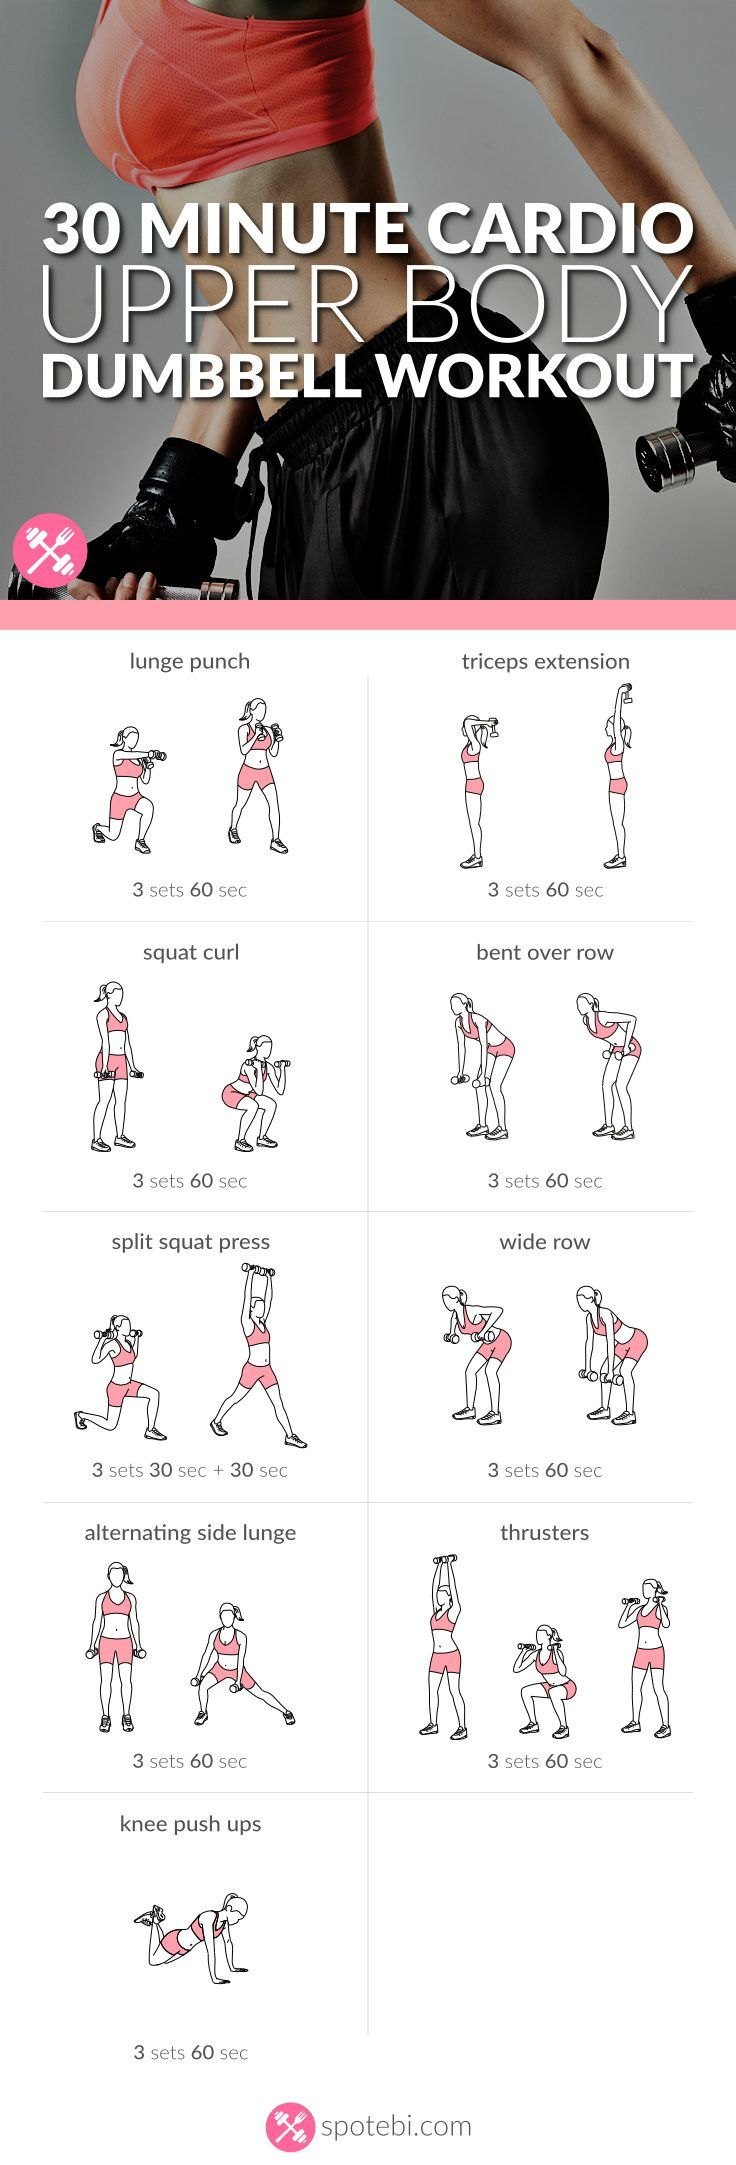 stretching exercise to increase height at http://www.mymedicalinfos.com